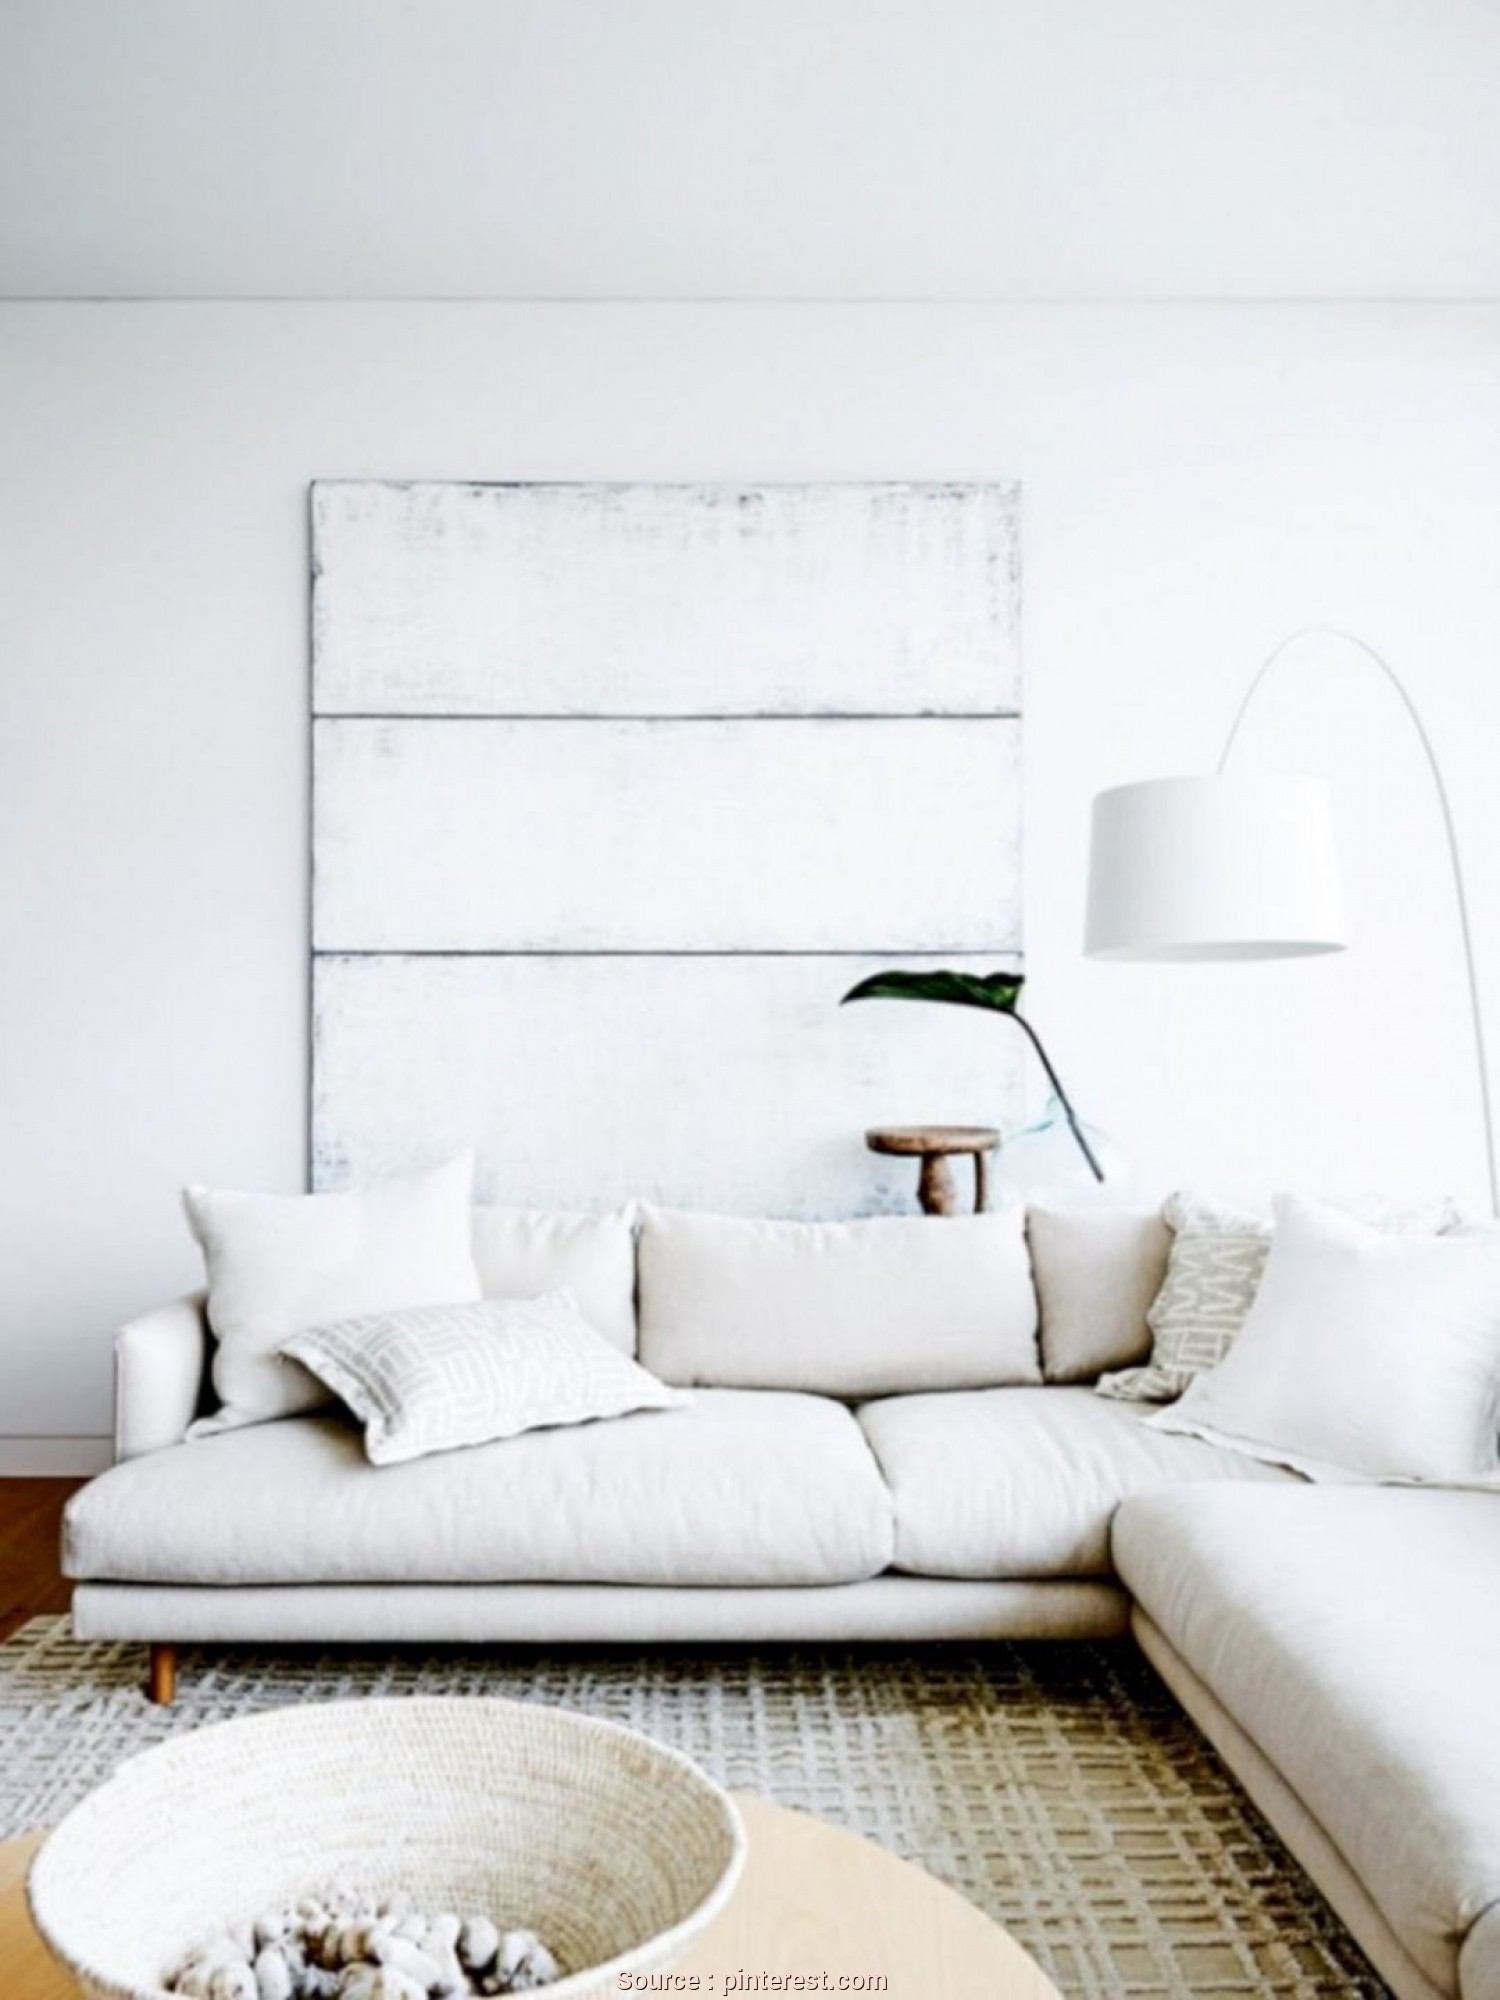 6 Divani Flour, Migliore Last Night I Legitimately Dreamt That I Lived In Last Week'S #Houseenvy Beach House. That'S Normal, Right?, Interior Design, Pinterest, Living Room Decor